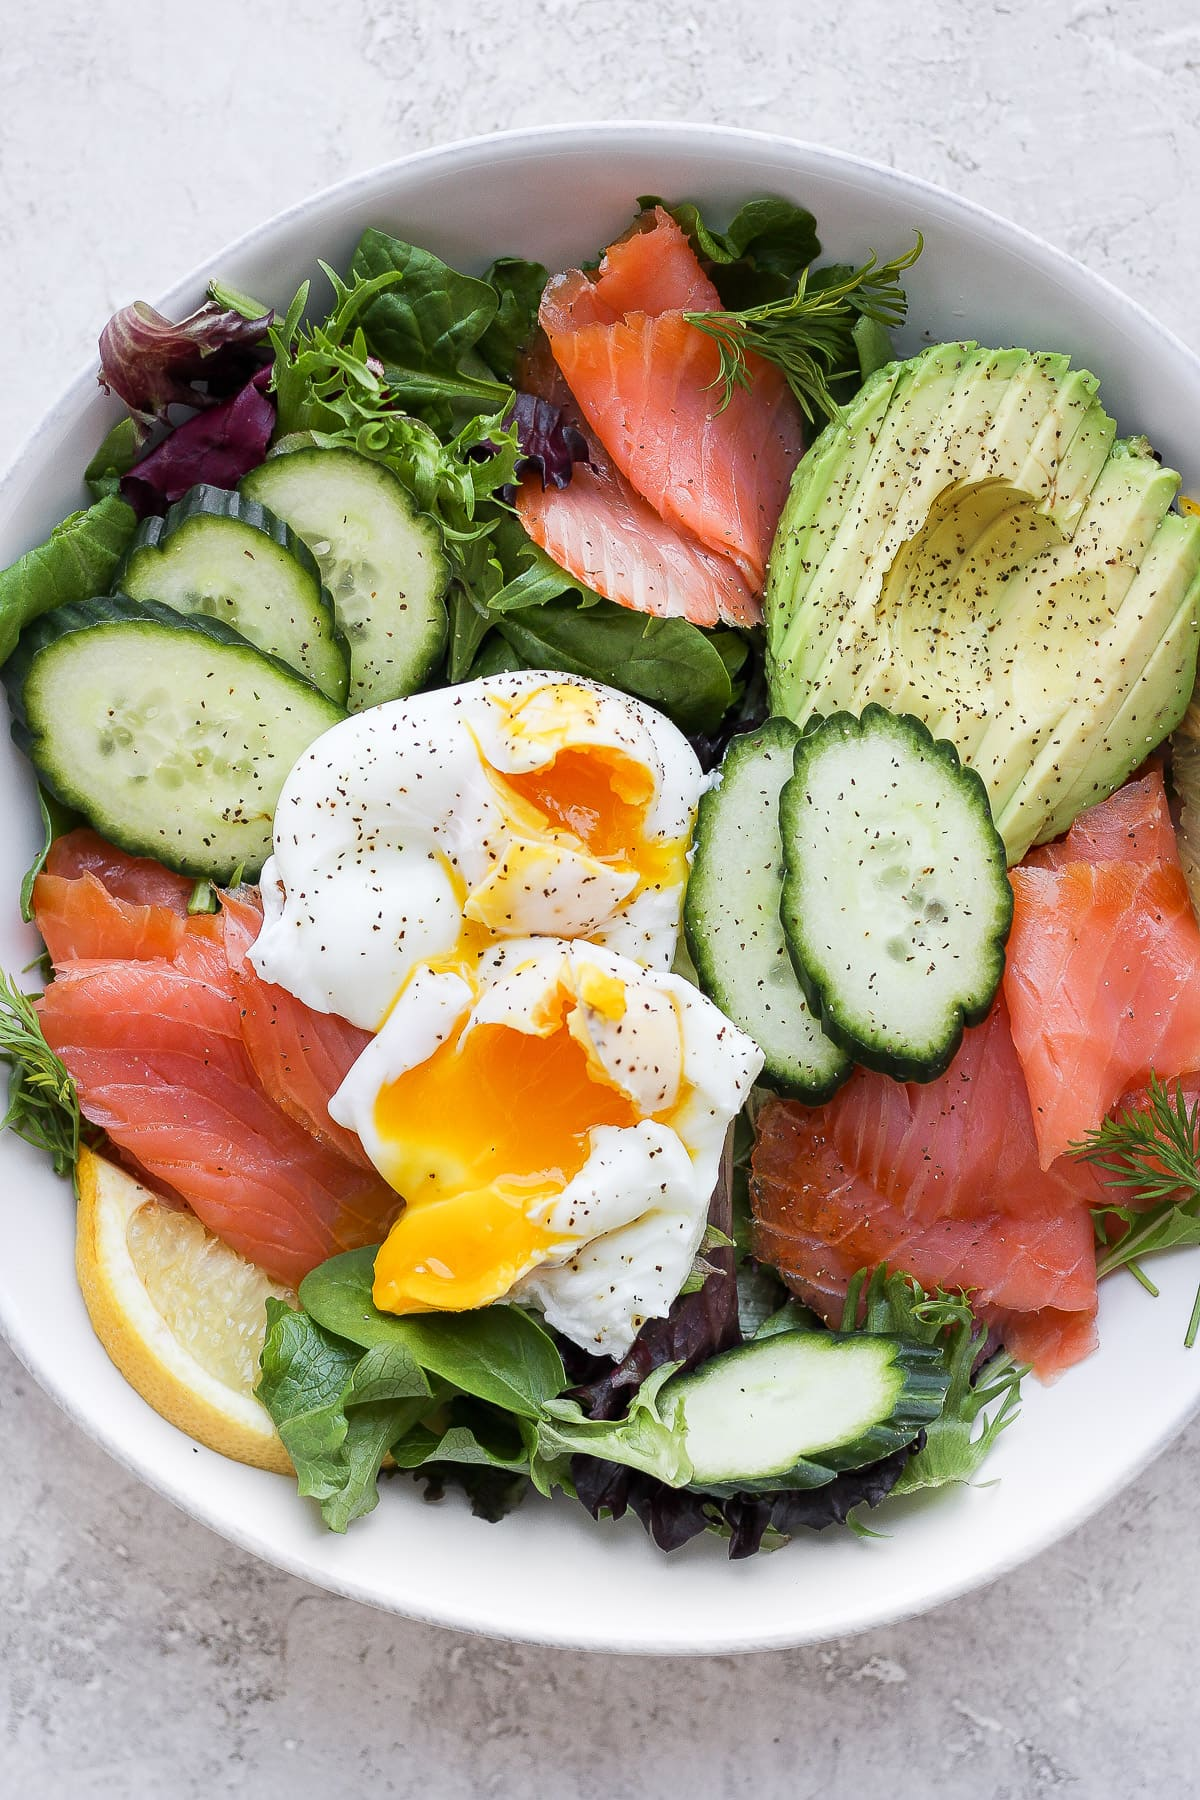 Smoked salmon salad in a bowl with two poached eggs on top.